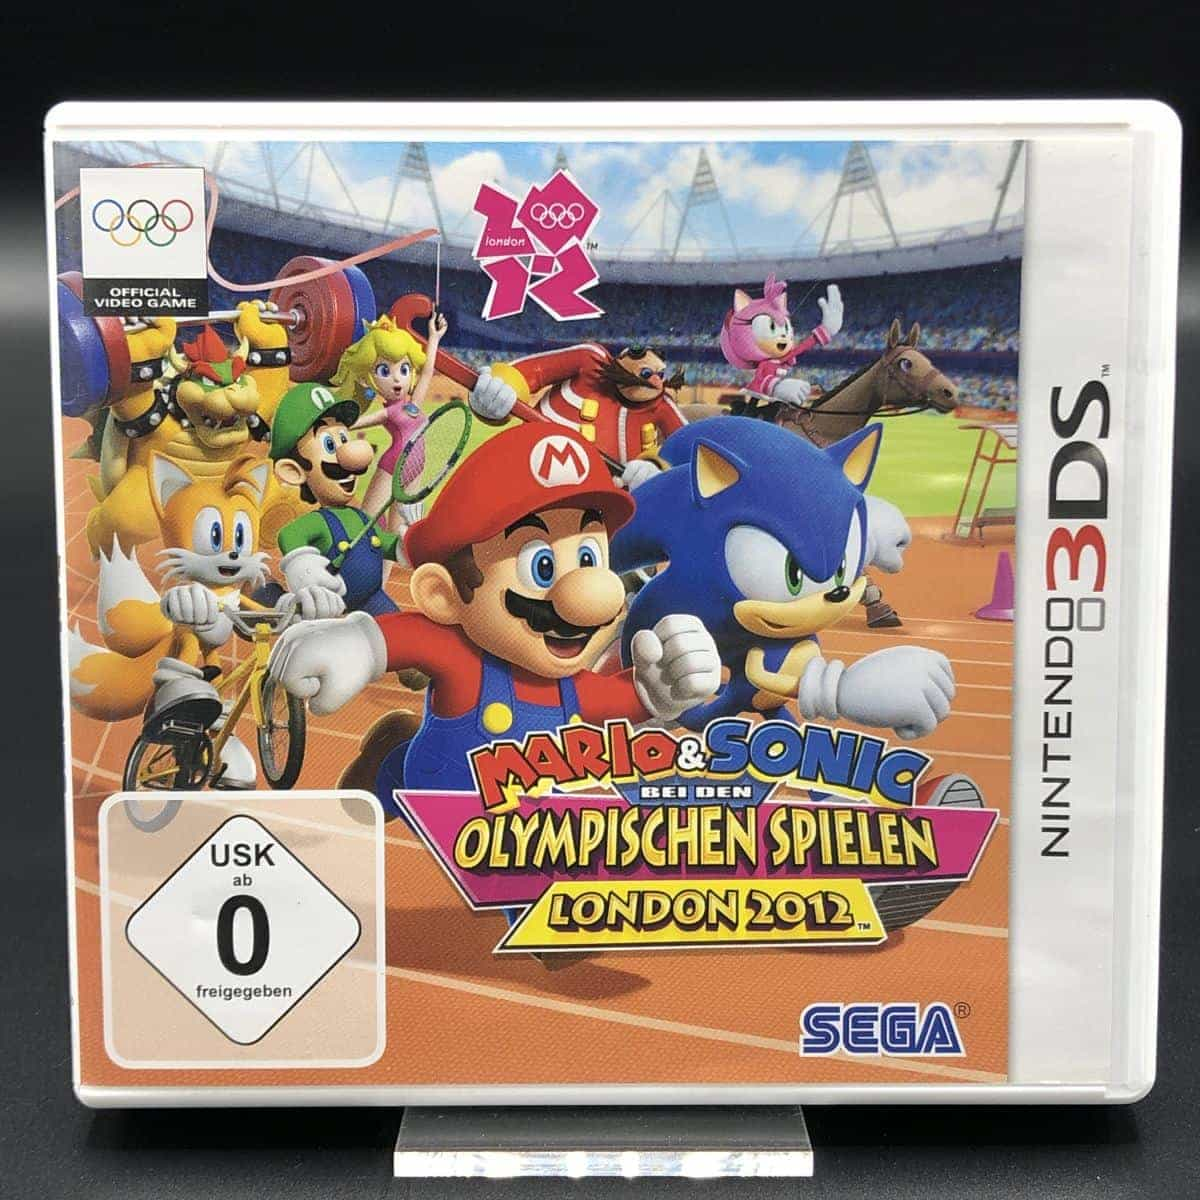 Mario & Sonic at the London 2012 Olympic Games (Komplett) (Sehr gut) Nintendo 3DS